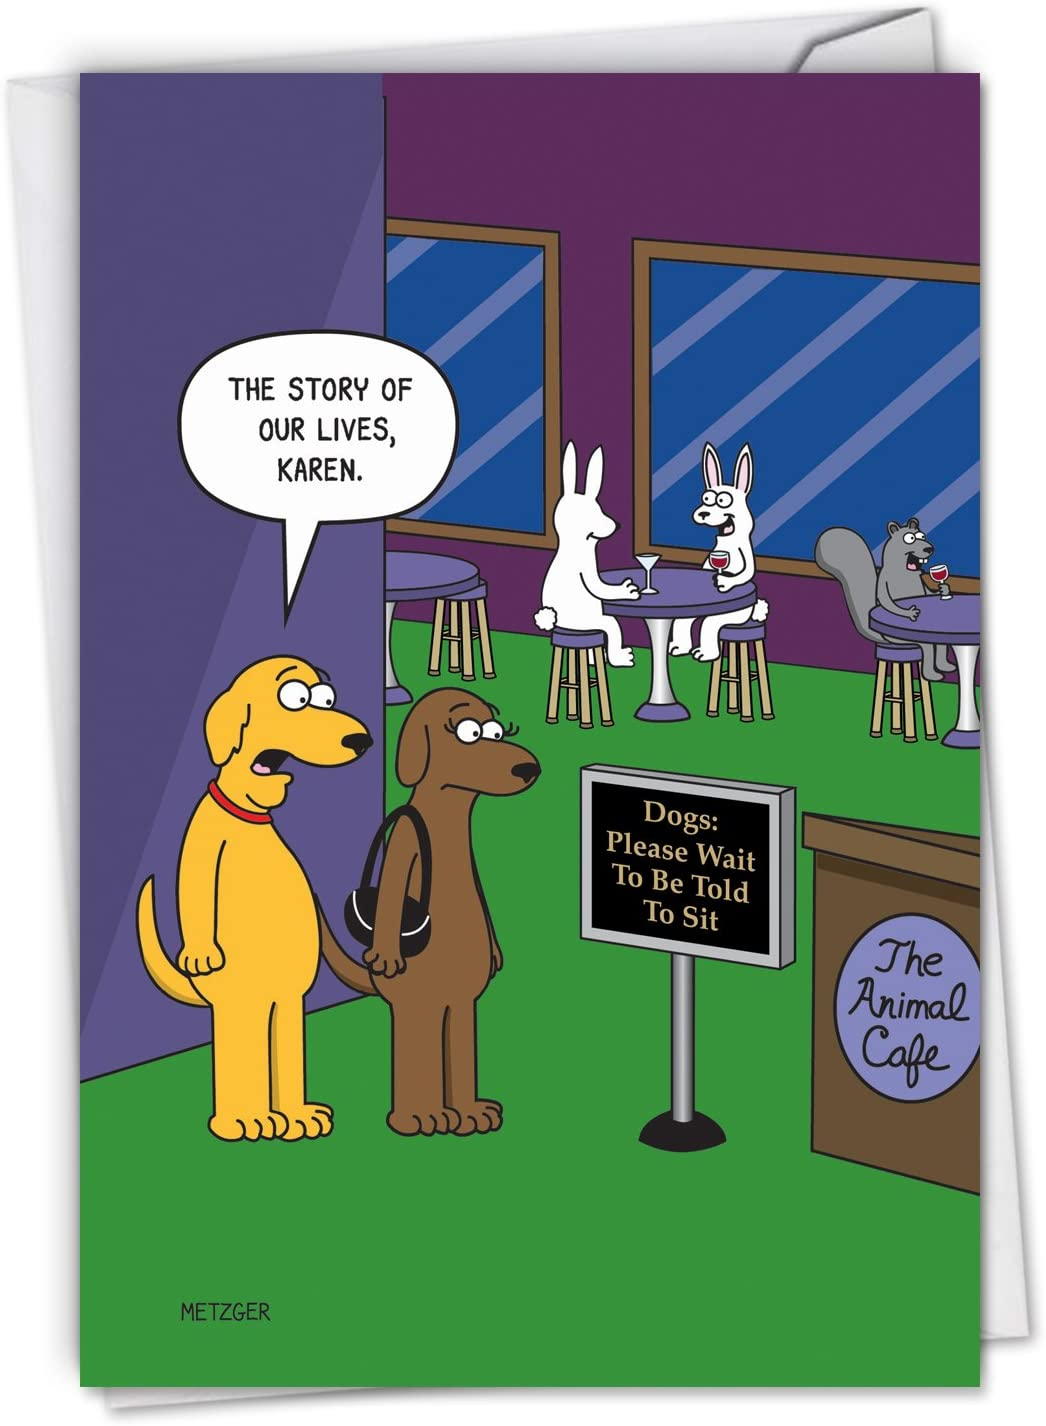 Amazon Com Nobleworks The Animal Cafe Funny Happy Birthday Note Card Humorous Dogs Pet Animals Cartoon Stationery C6384bdg Office Products